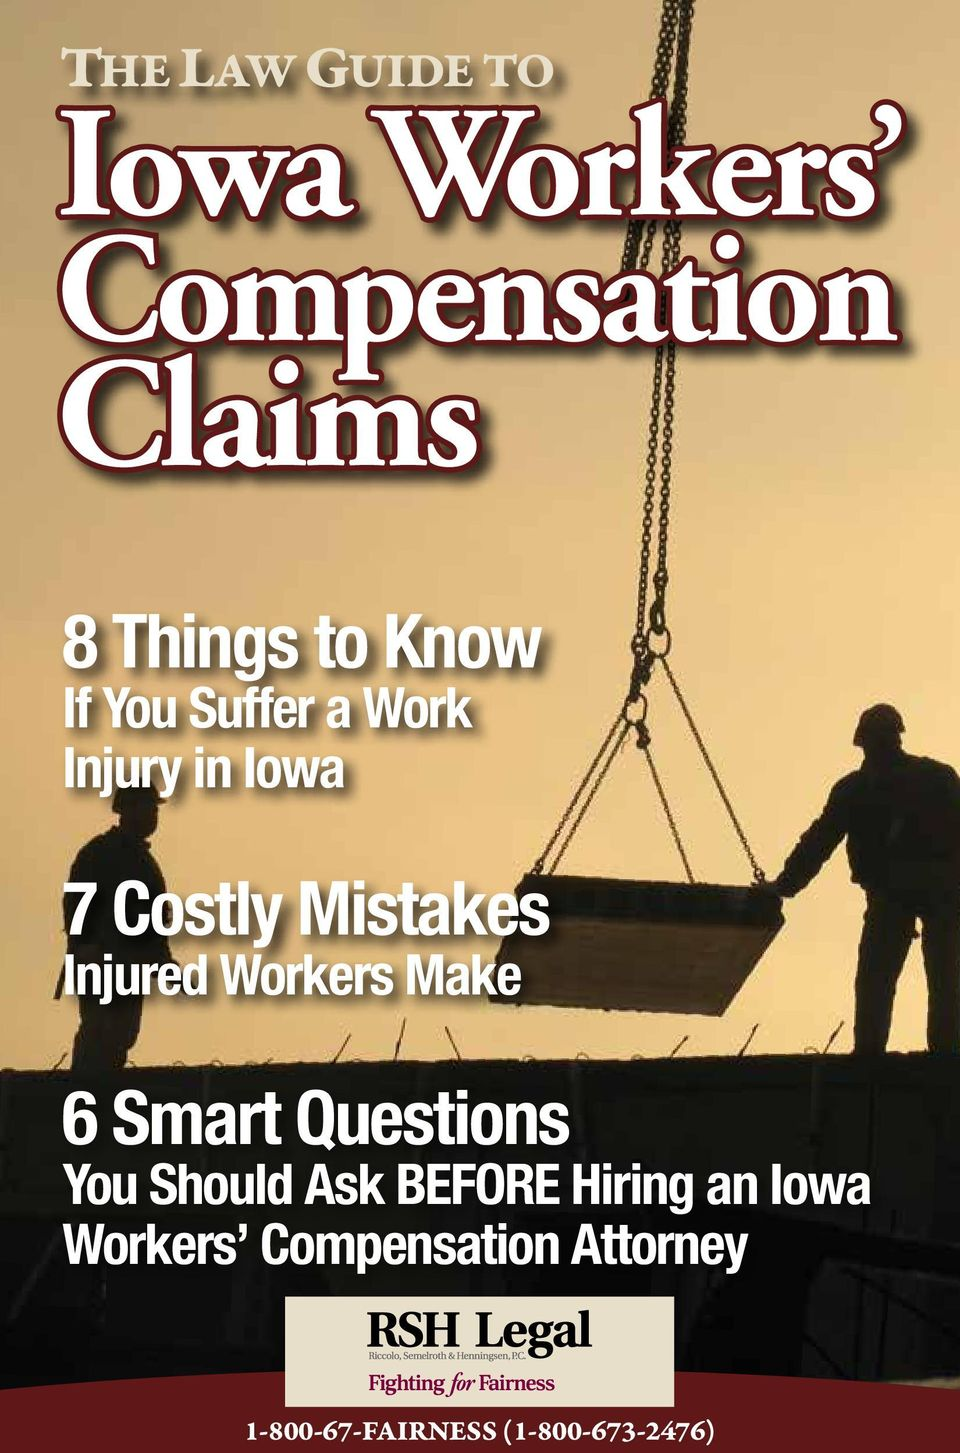 Injured Workers Make 6 Smart Questions You Should Ask BEFORE